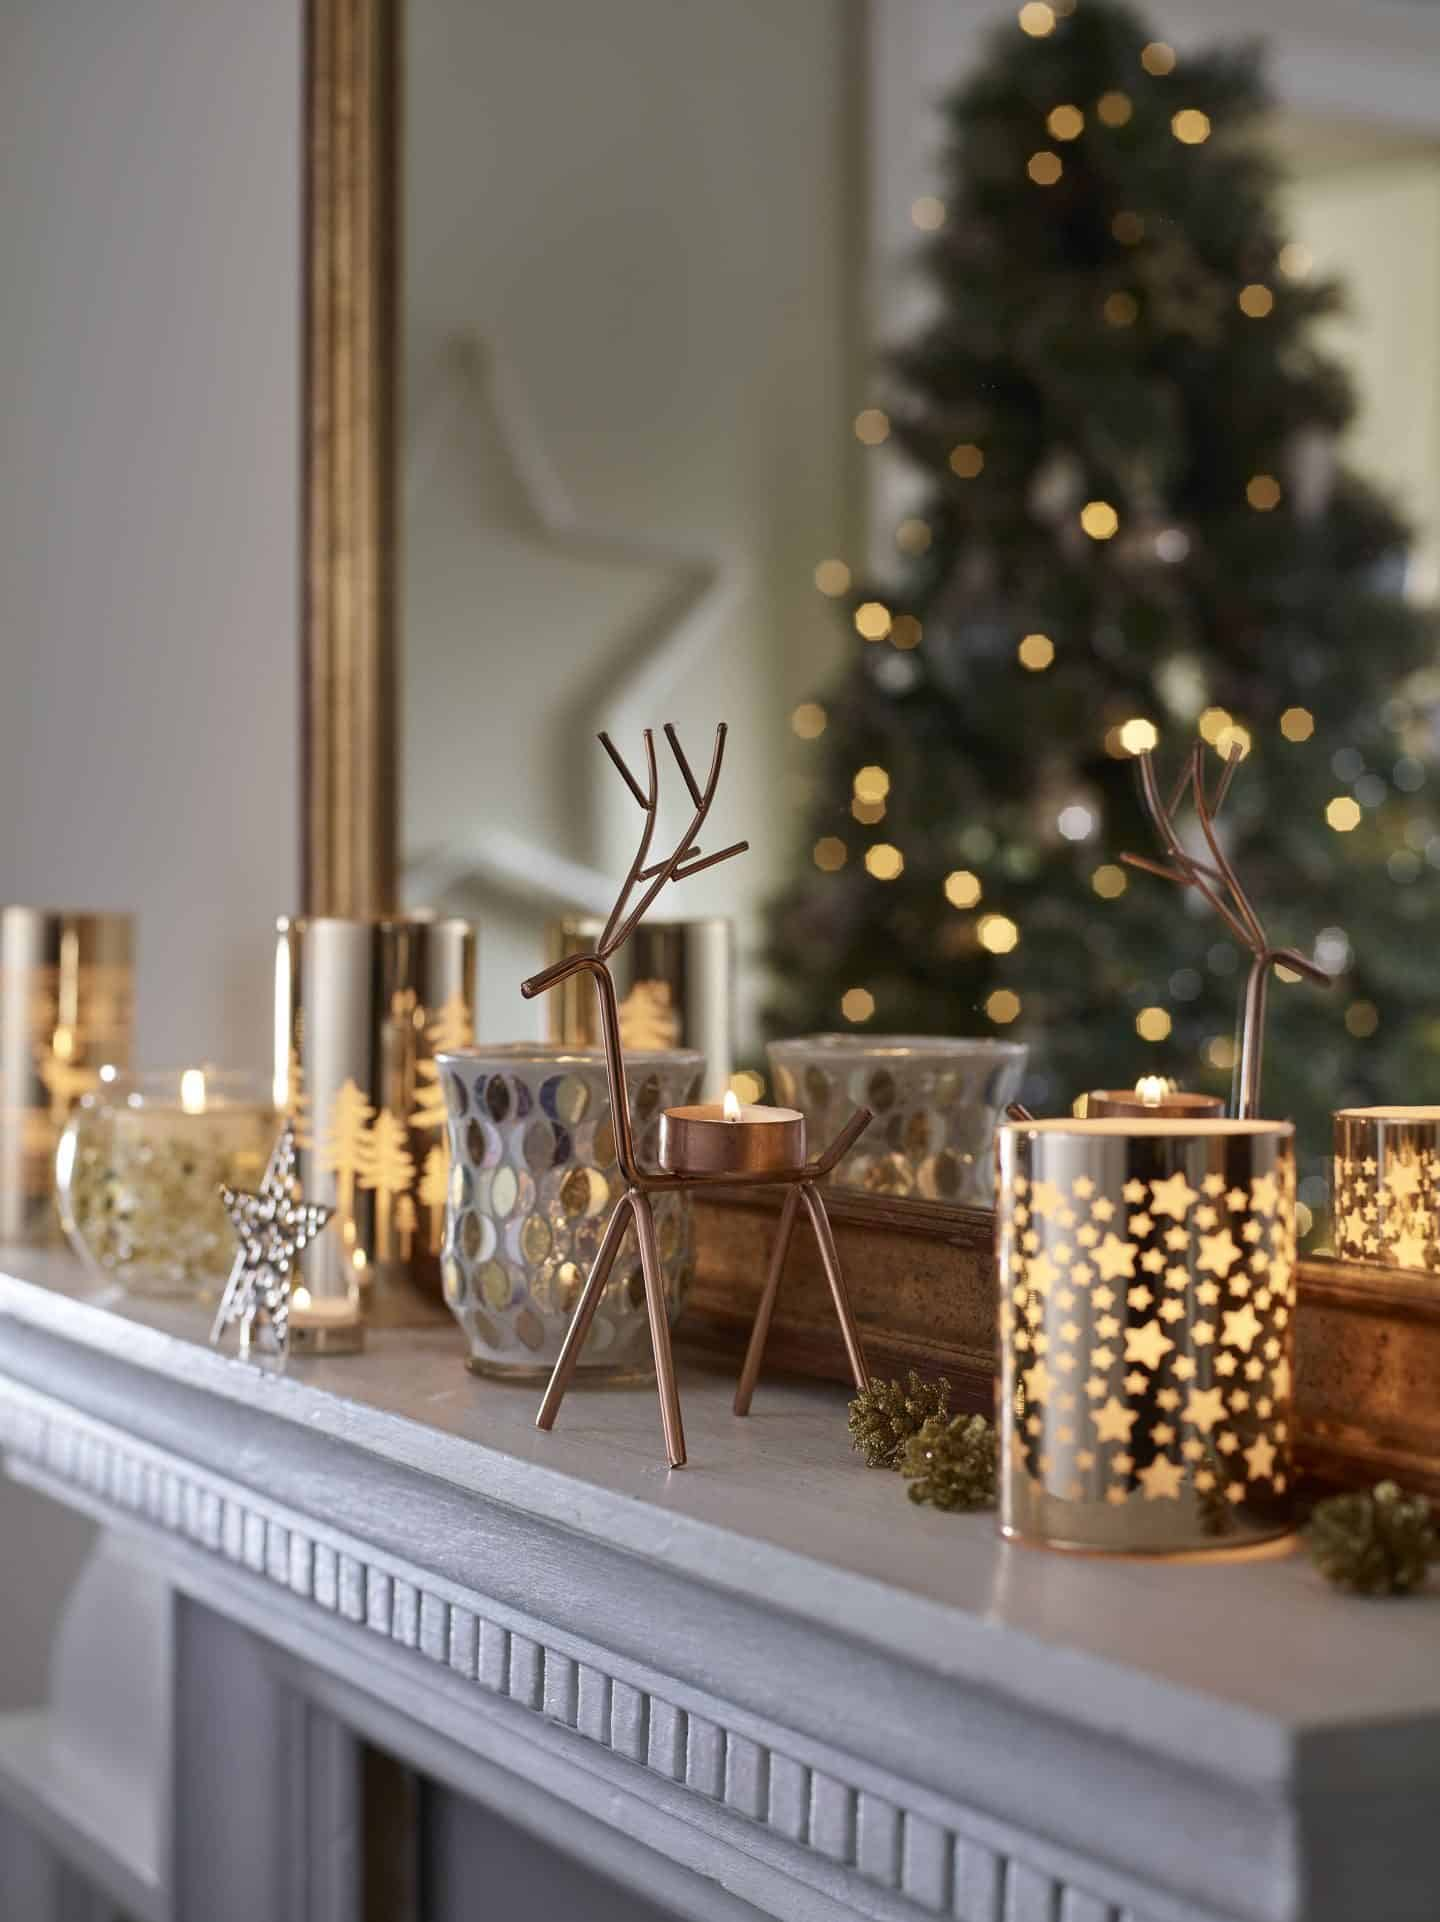 Dobbies All That Glitters Christmas Trend - Festive Candle Holders on the mantelpiece